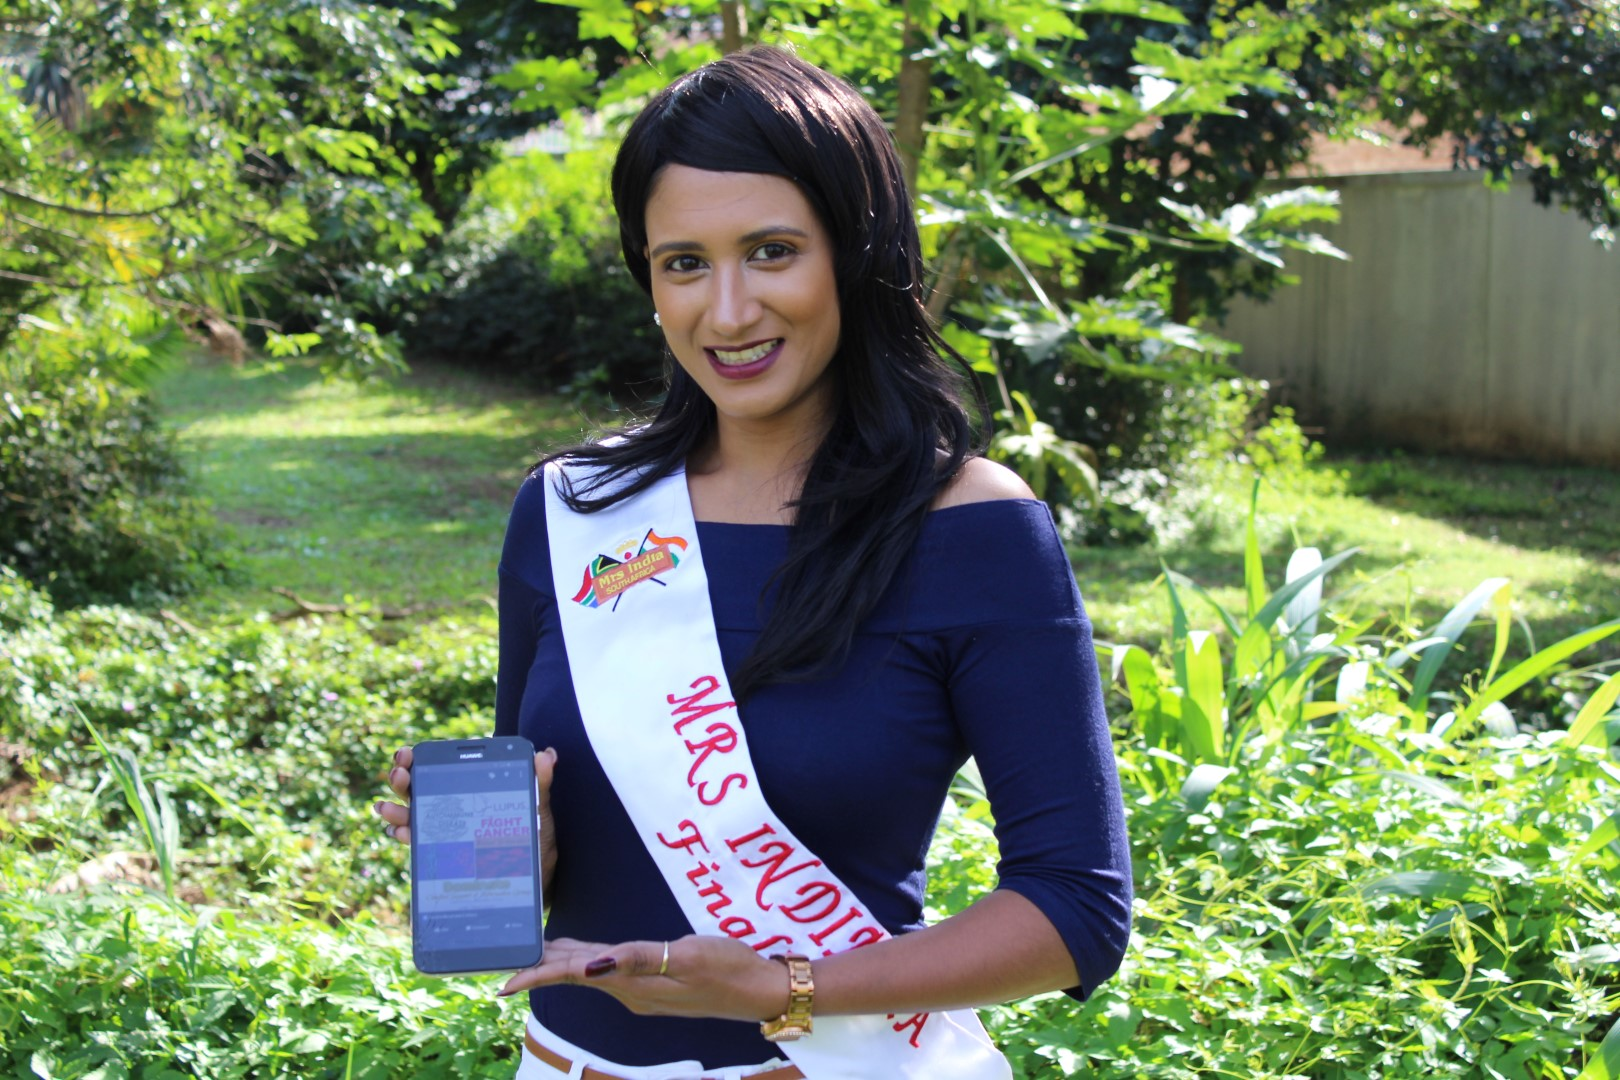 Effingham resident, Nicole Maistry is one of this year's Mrs India finalists.